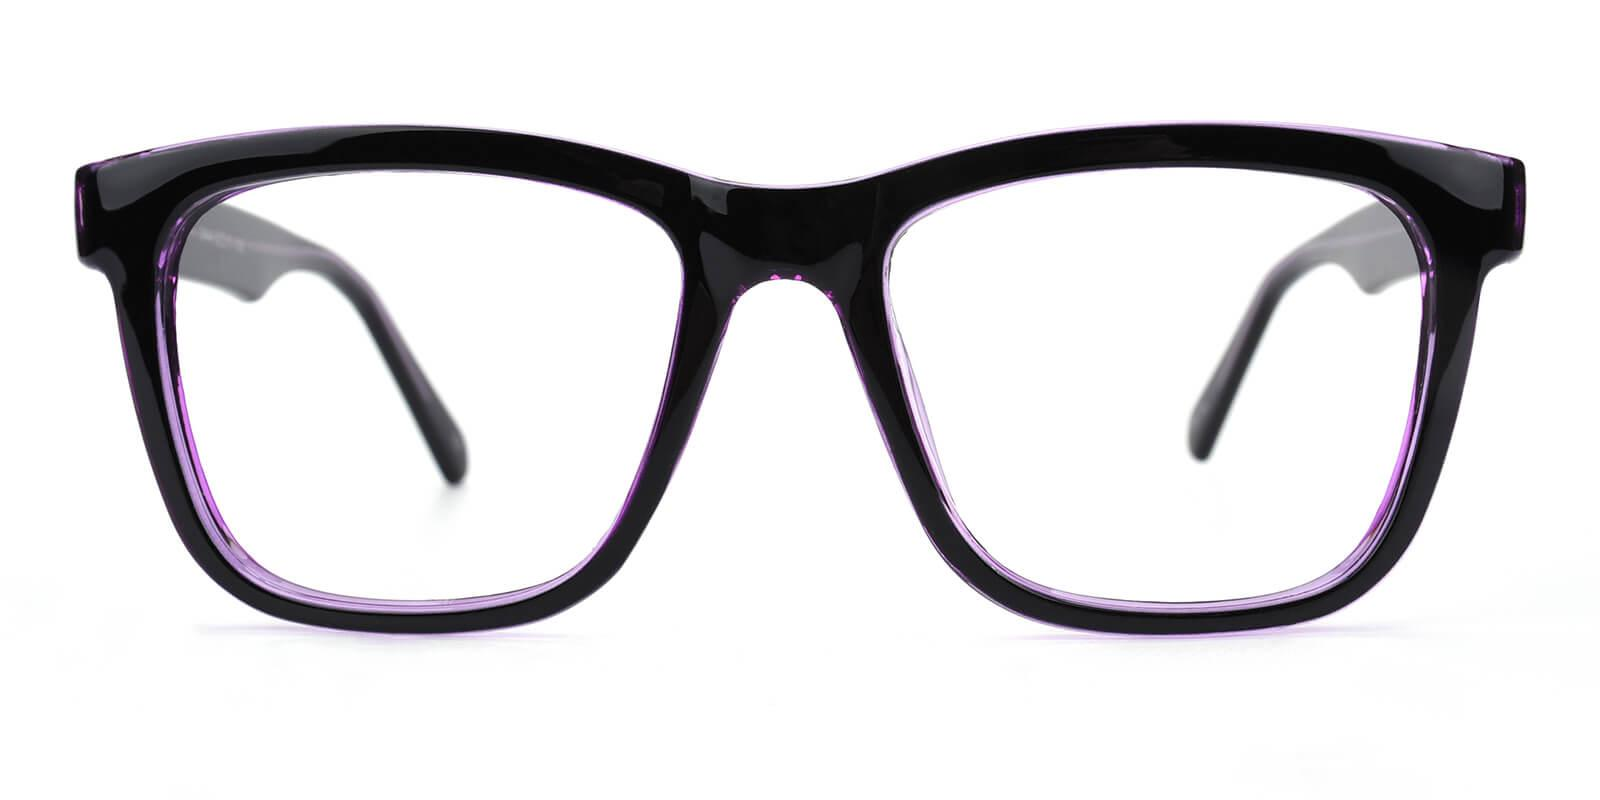 Colaan-Purple-Square-Plastic-Eyeglasses-additional2